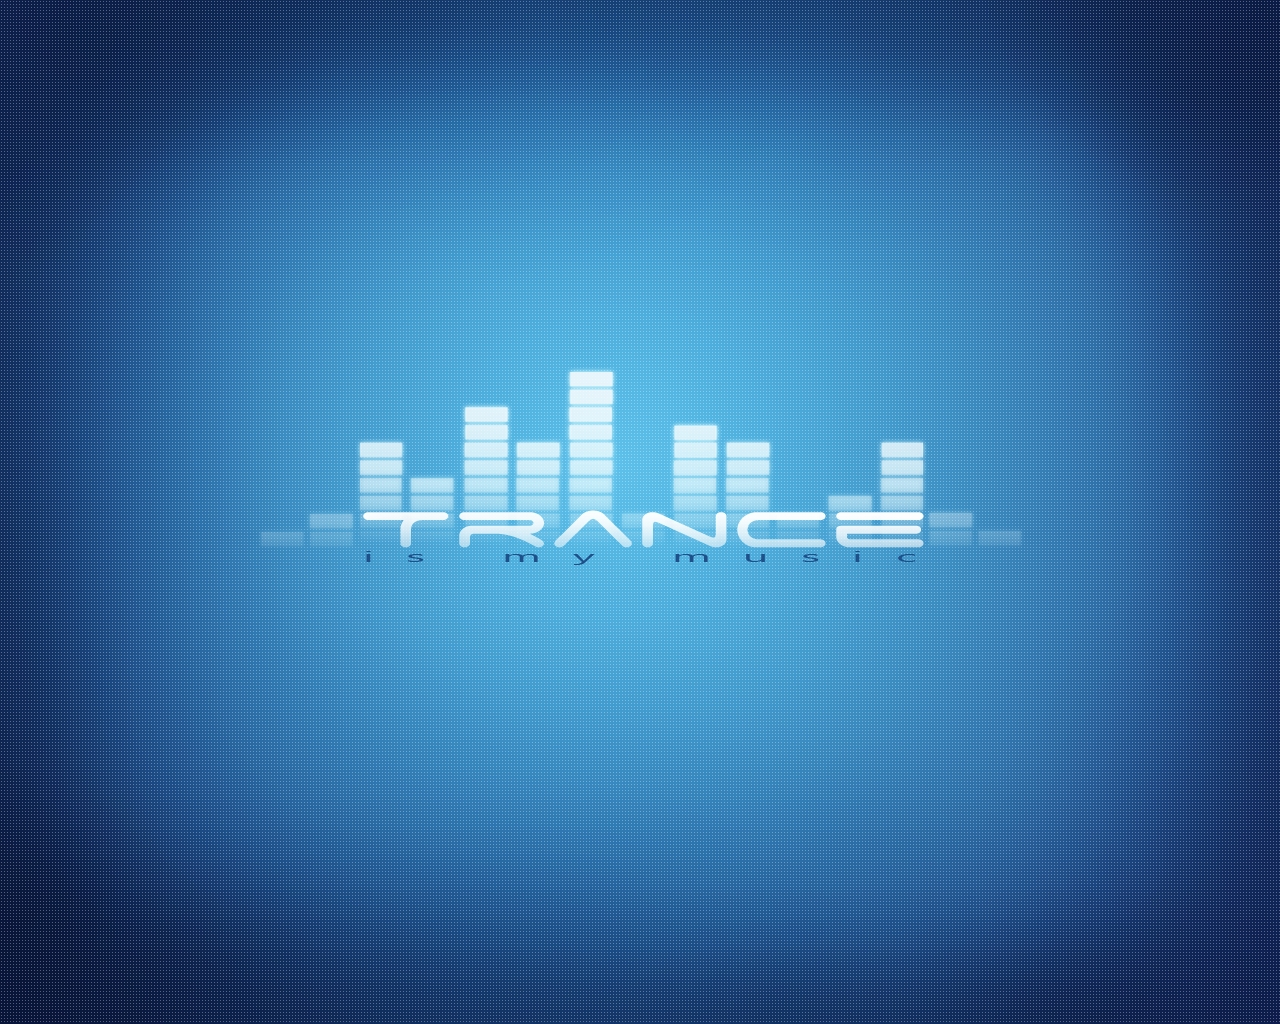 Trance is my music    ...